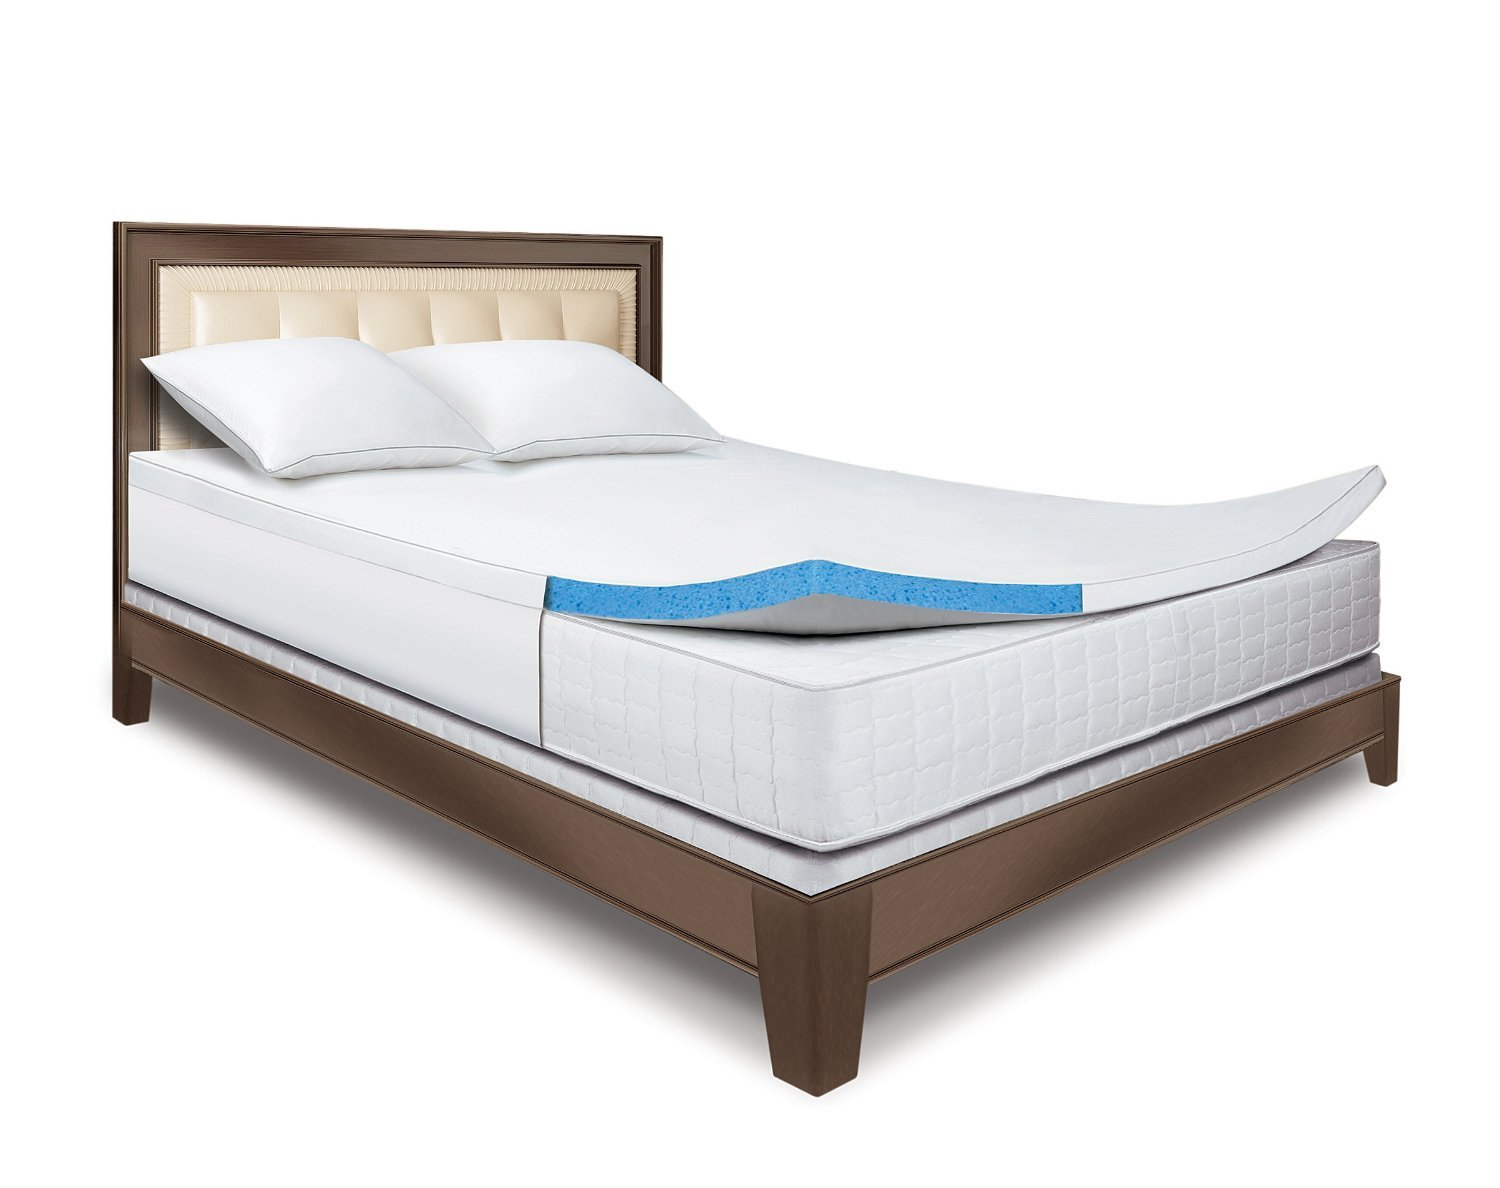 BedInABox Natural Silk Elegance Gel Bed Mattress (Twin) Compare Prices